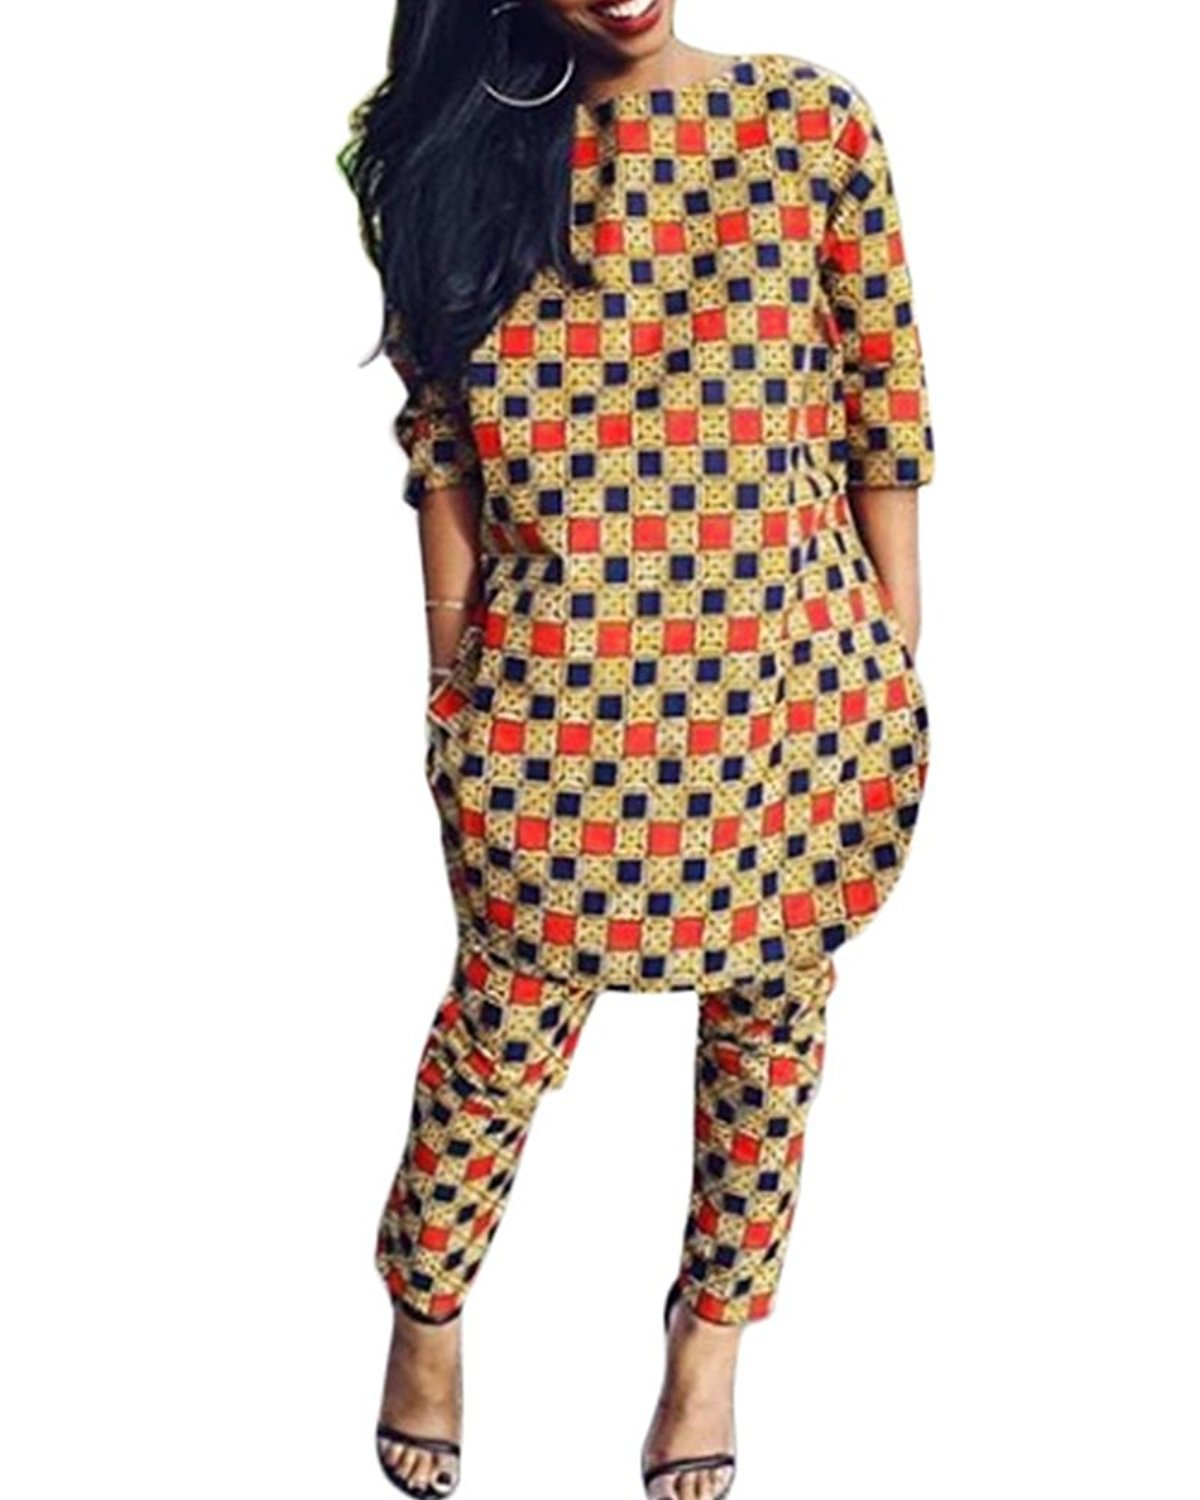 Womens 2 Piece Outfits 3/4 Sleeve African Print Dashiki Top and Legging Pants